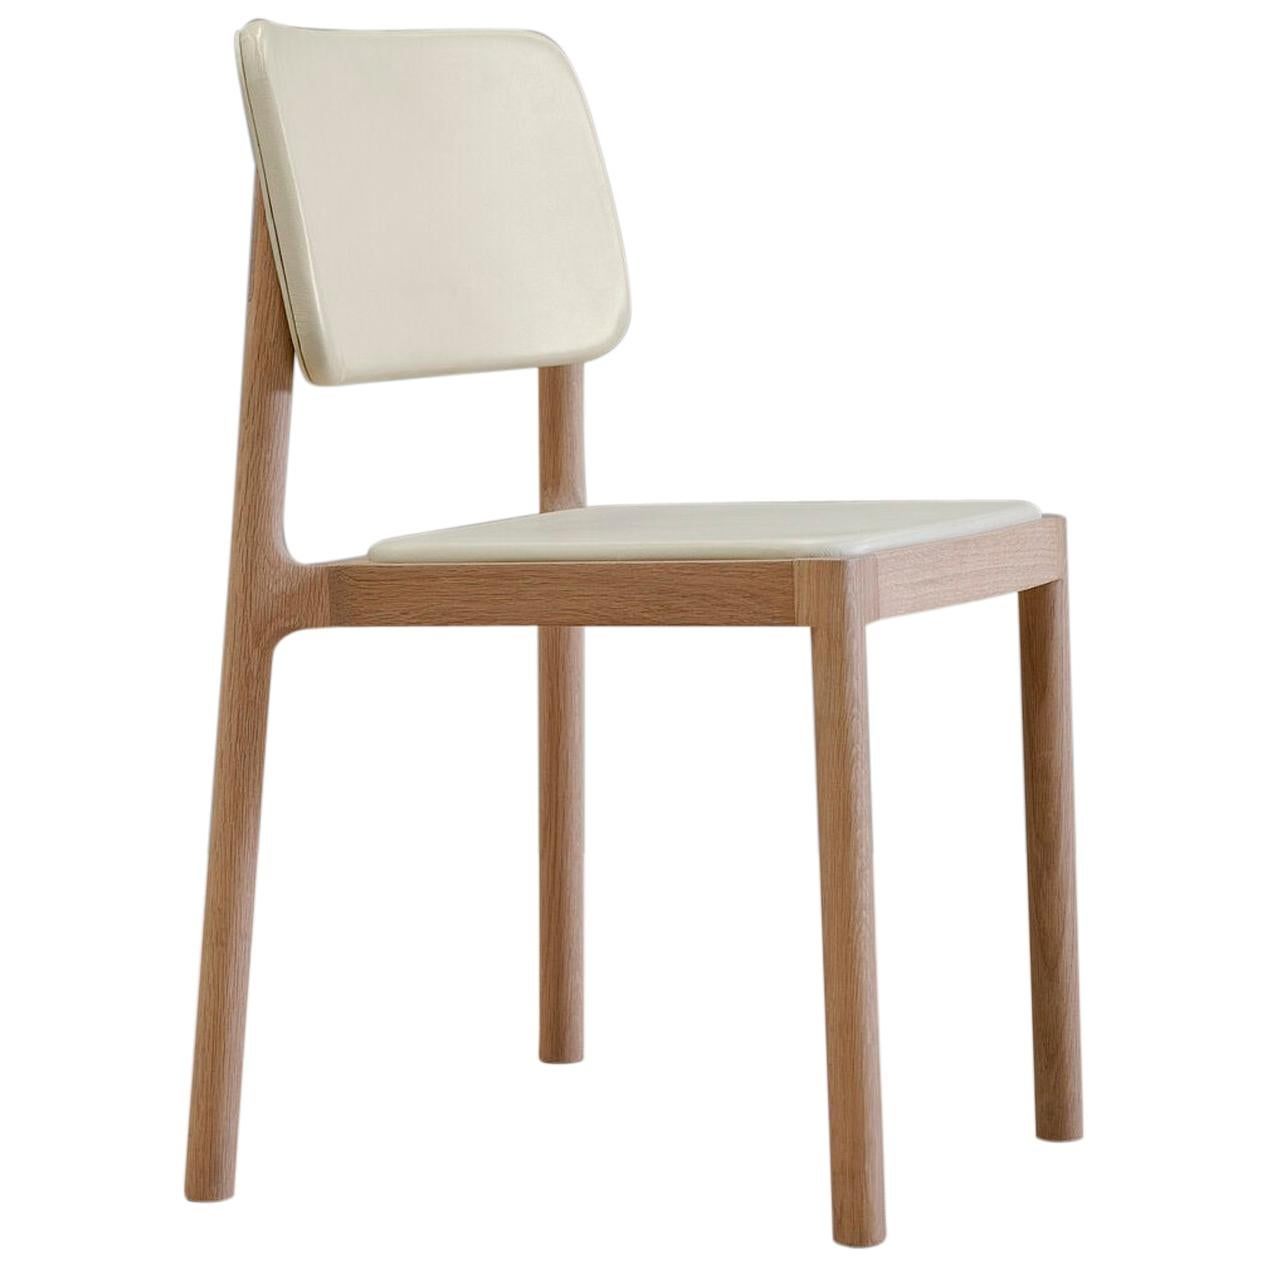 Linard, Oak and White Leather Chair